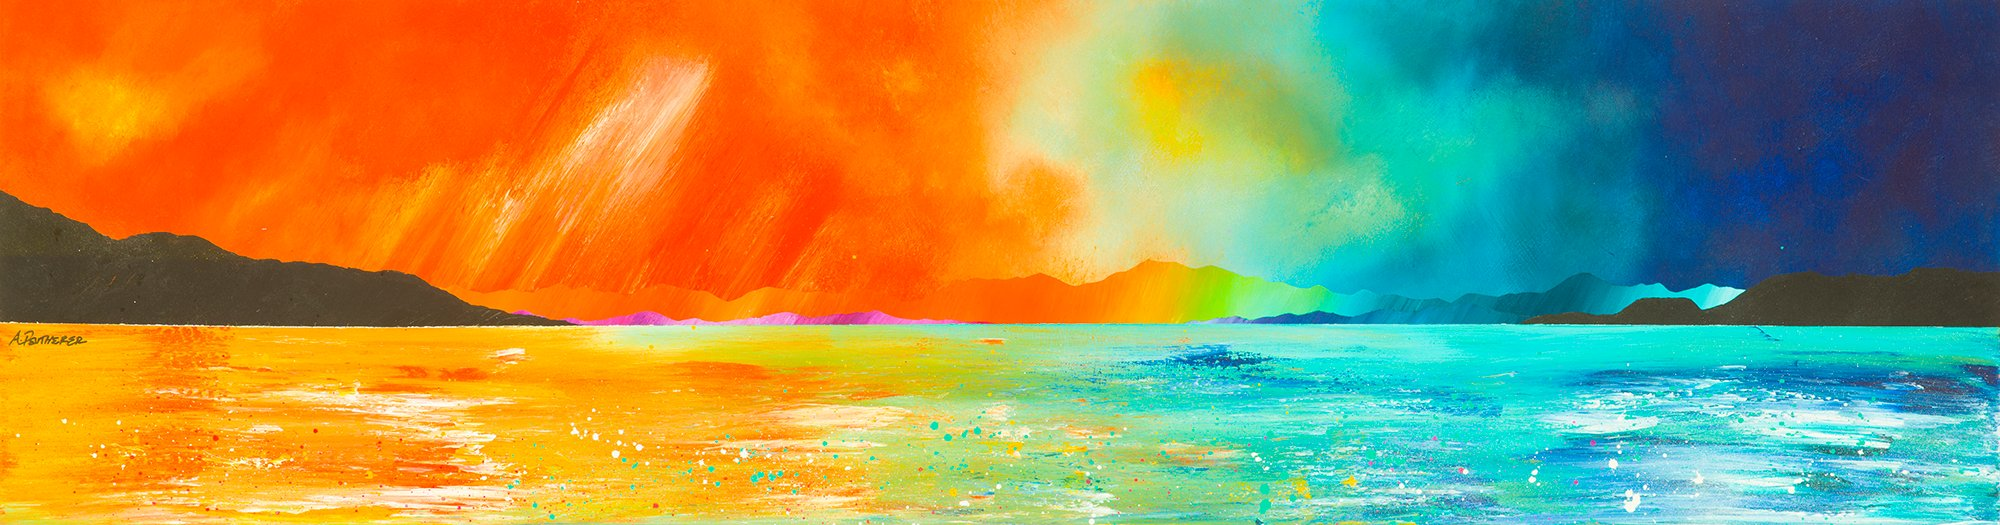 Painting & prints of The Isle of Jura from Tayvallich, Scottish Highlands.